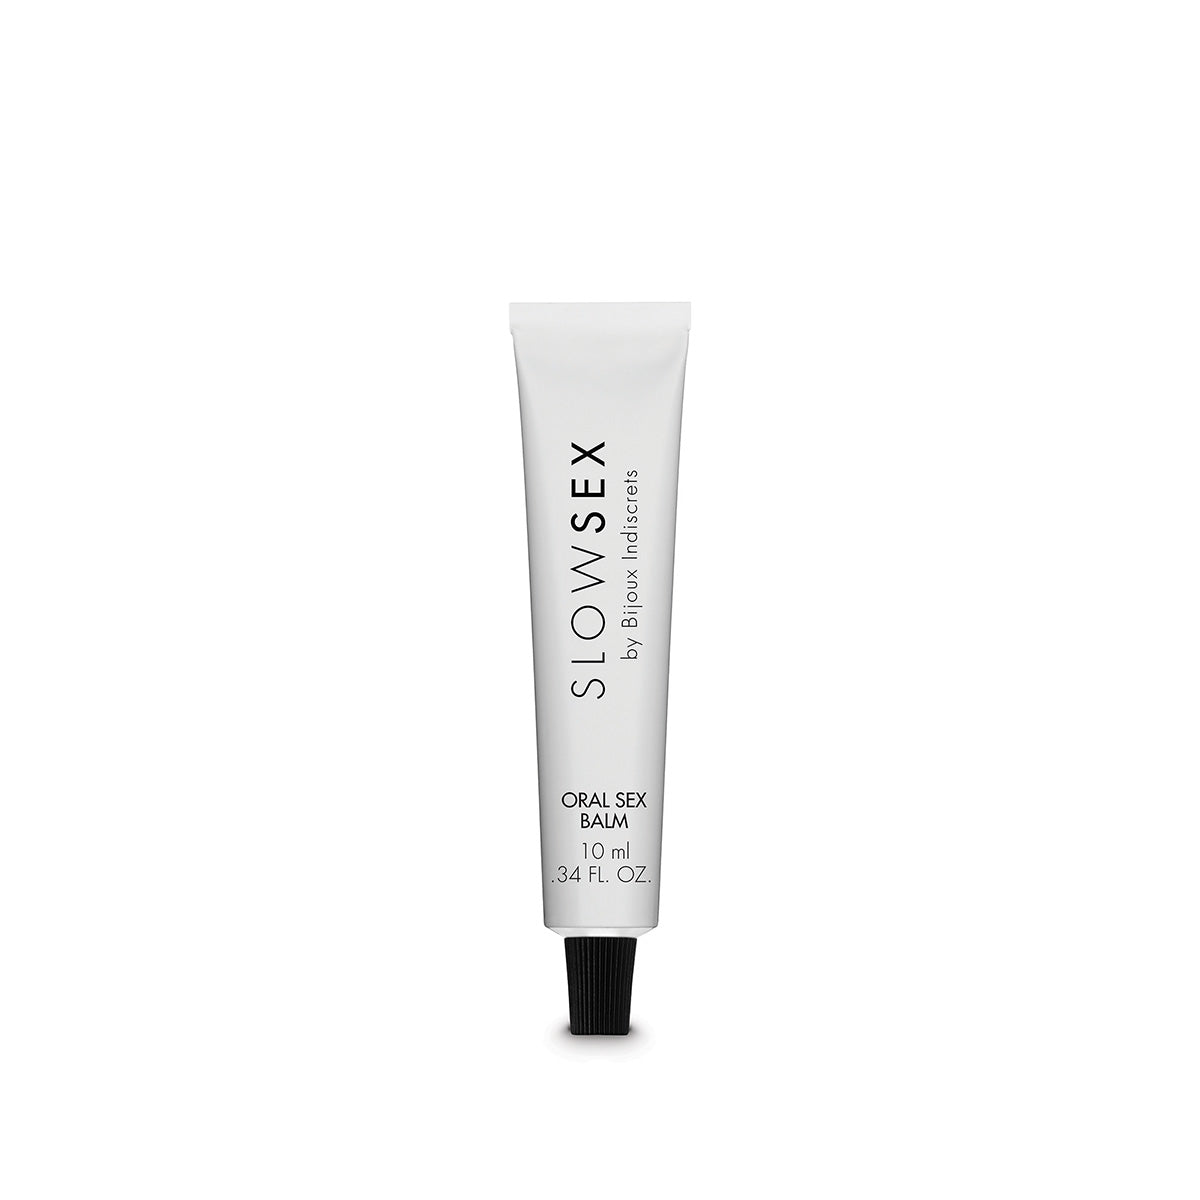 Slow Sex Oral Sex Balm